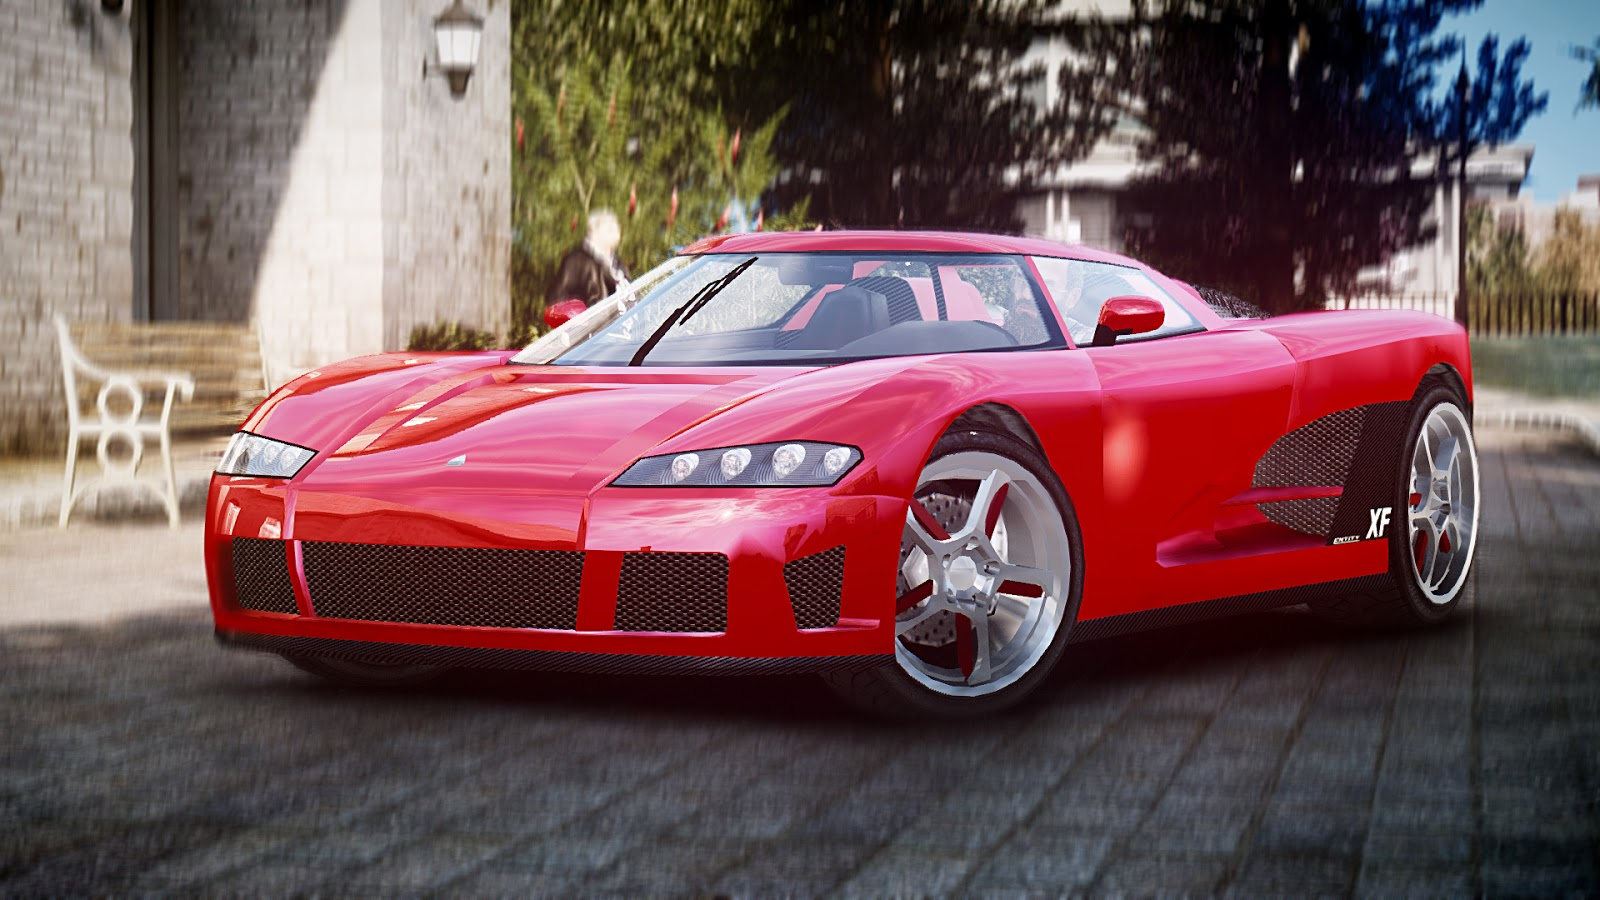 Gta 5 Entity Xf In Real Life The gallery for -->...